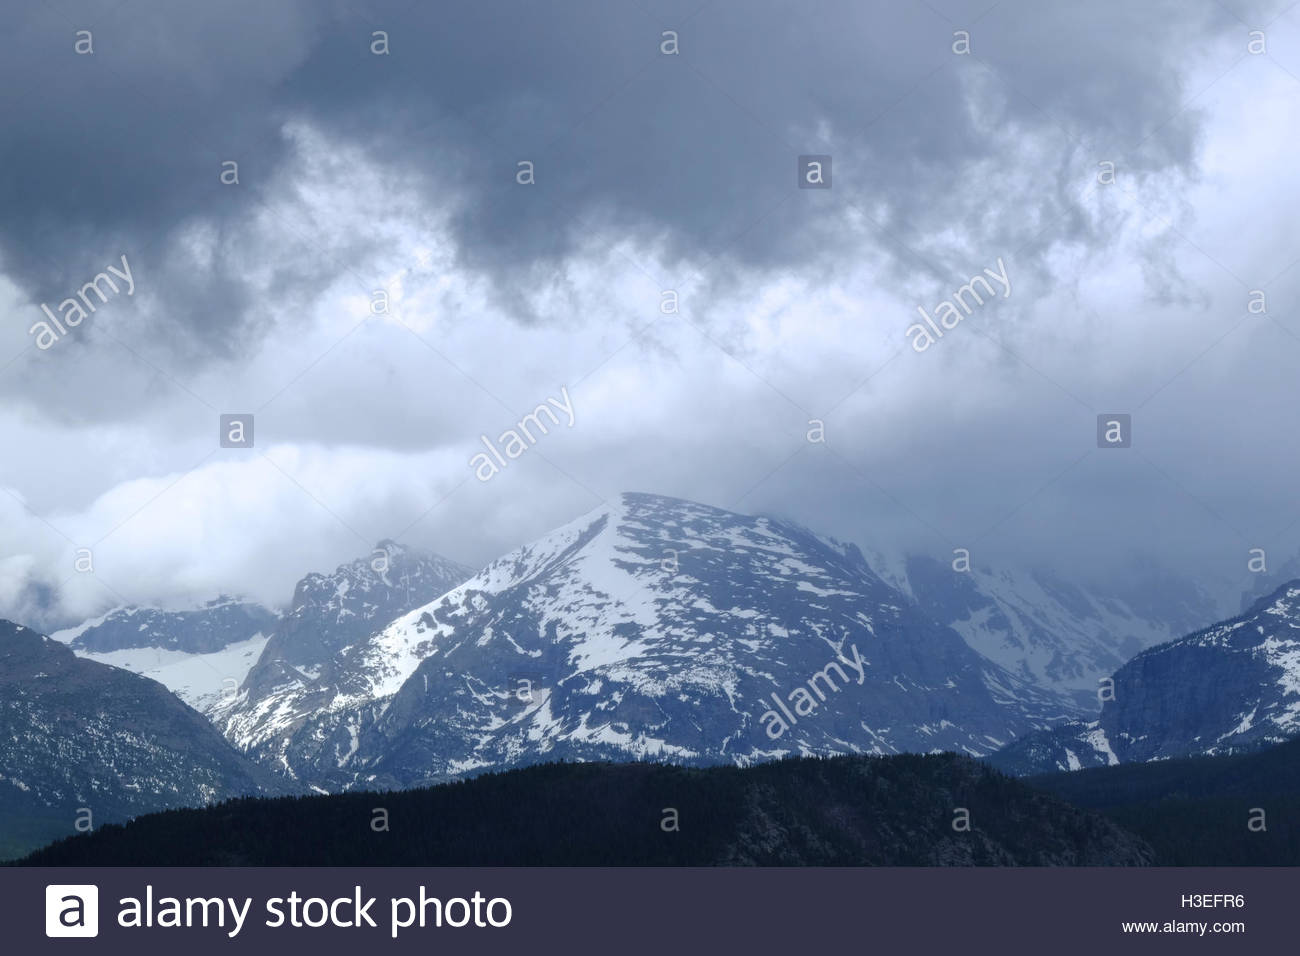 Snow covered mountain peaks reach the clouds in Rocky Mountain National Park, Colorado. - Stock Image